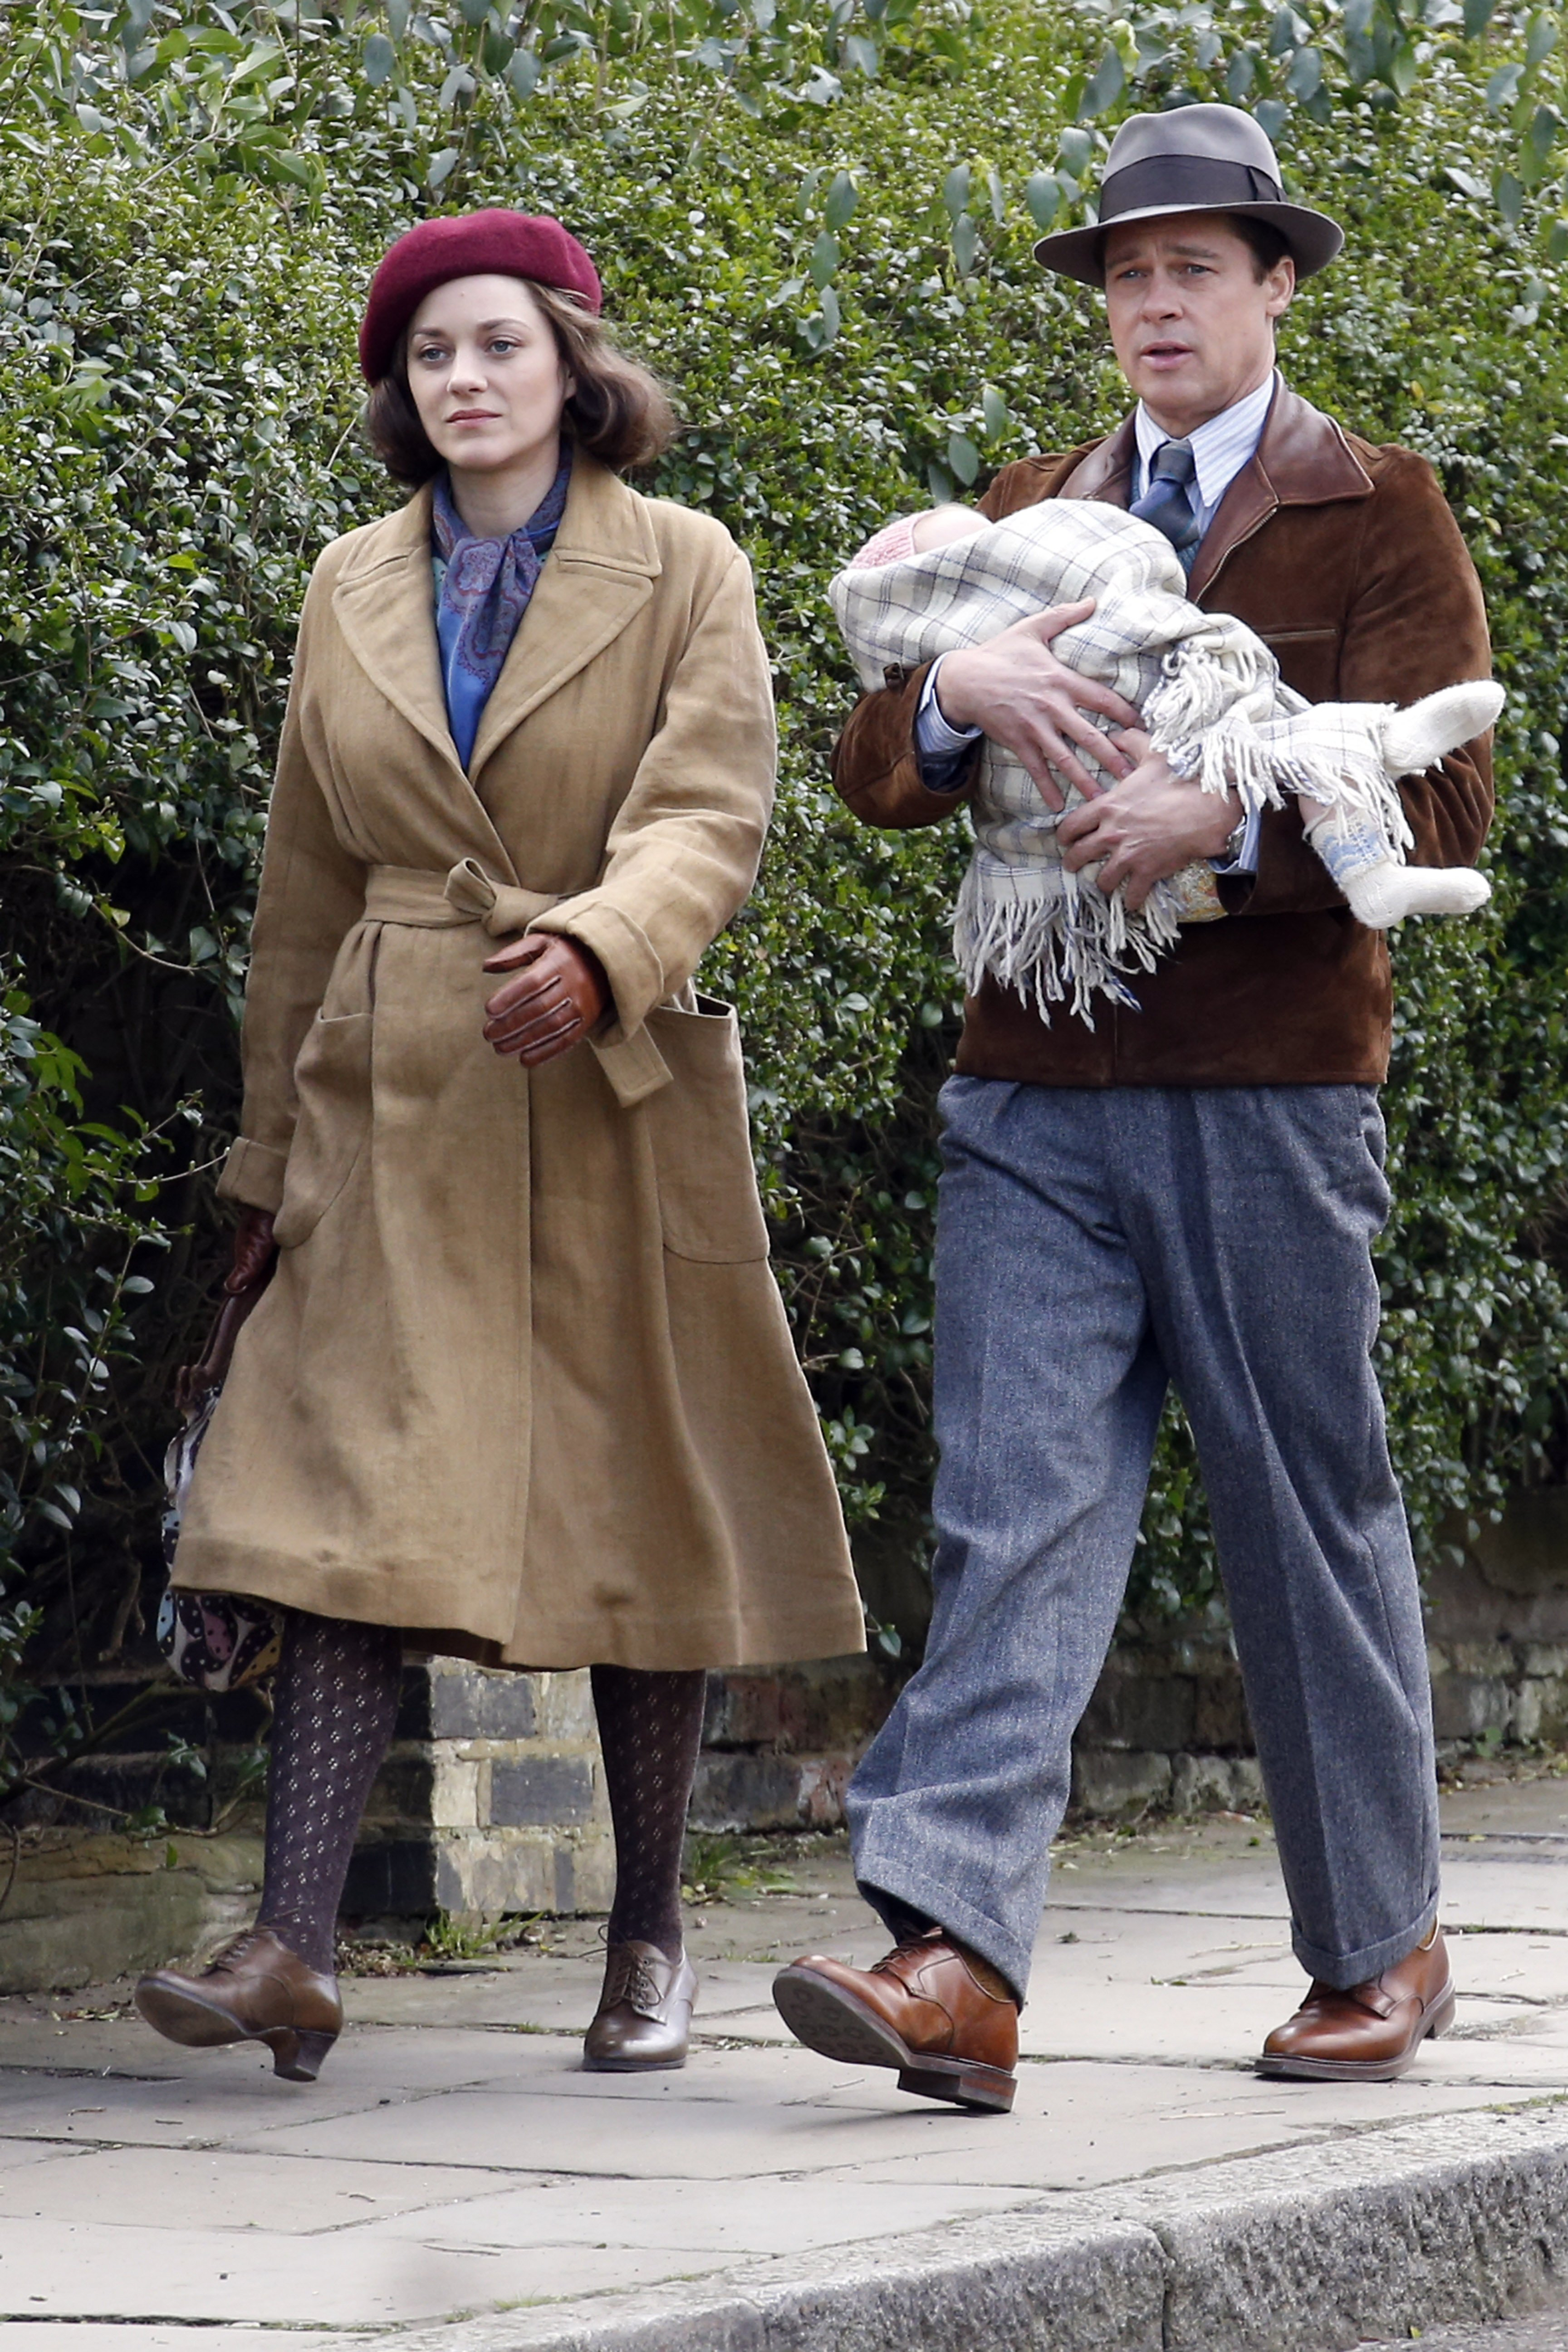 Marion Cotillard and Brad Pitt seen filming scenes for 'Five Seconds Of Silence' in Hampstead on March 31, 2016 in London